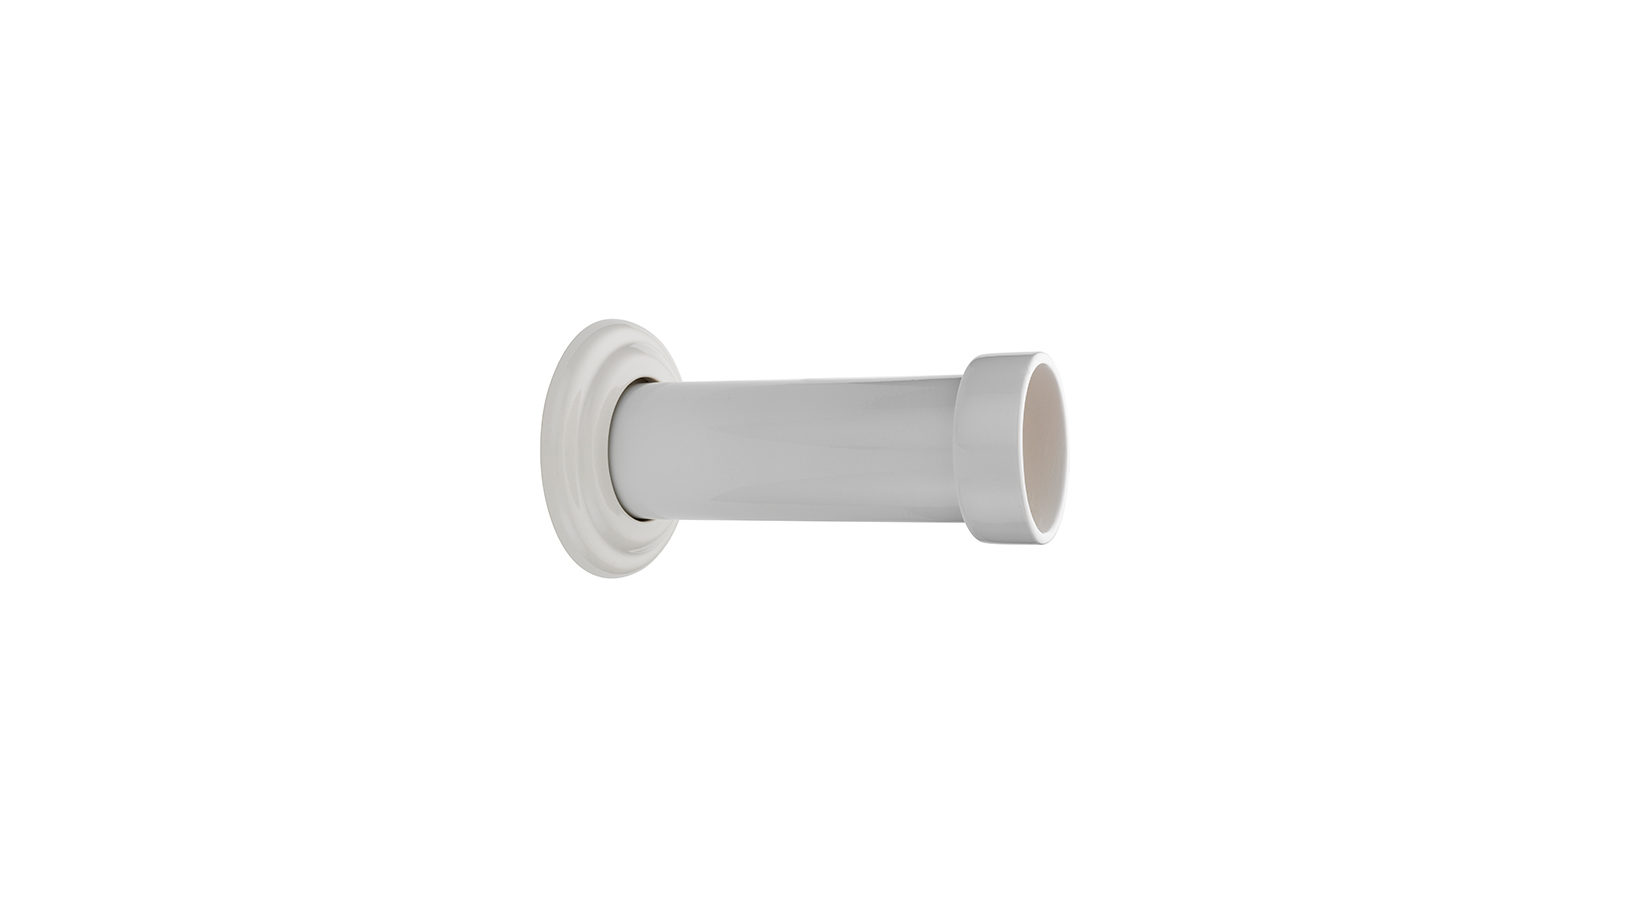 Extended Ceramic Soil Pipe Connector Into Wall